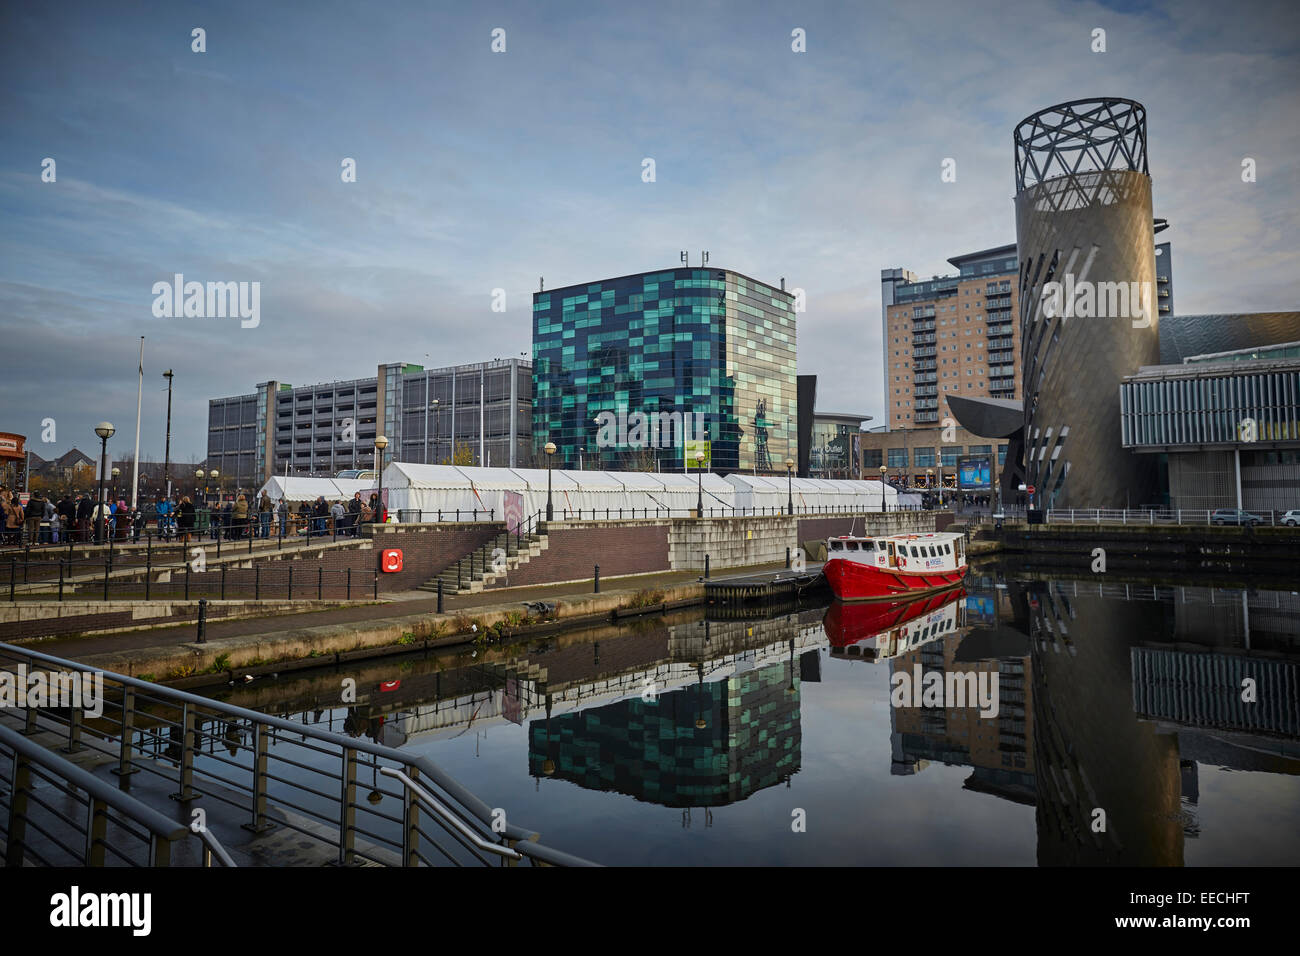 Lowry Outlet at Media City in Salford Quays, Victorian Christmas Market. Stock Photo